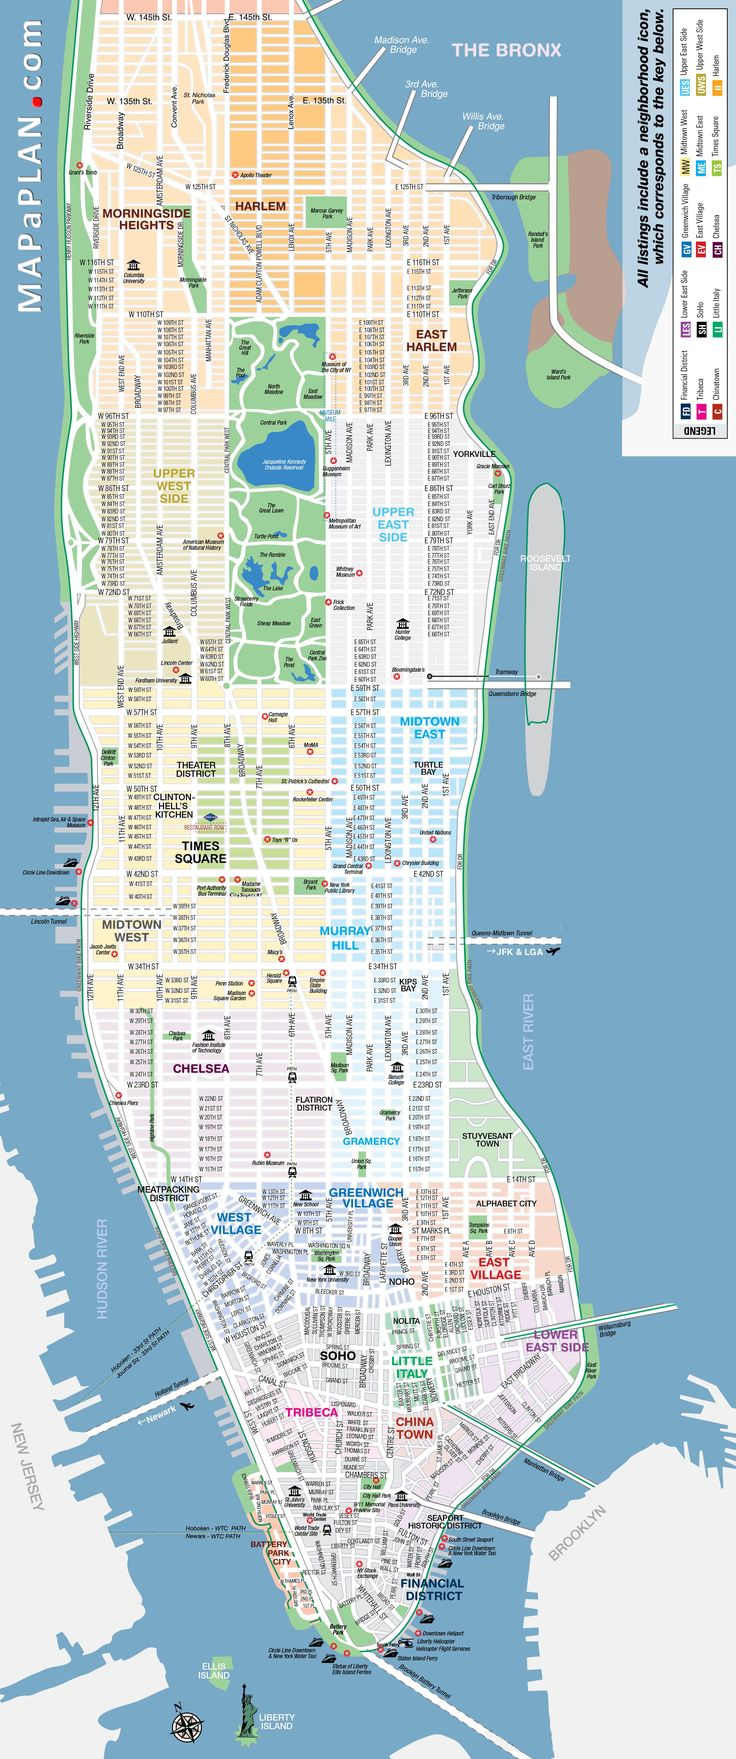 25 Best Ideas About Manhattan Map On Pinterest Map Of Manhattan New York